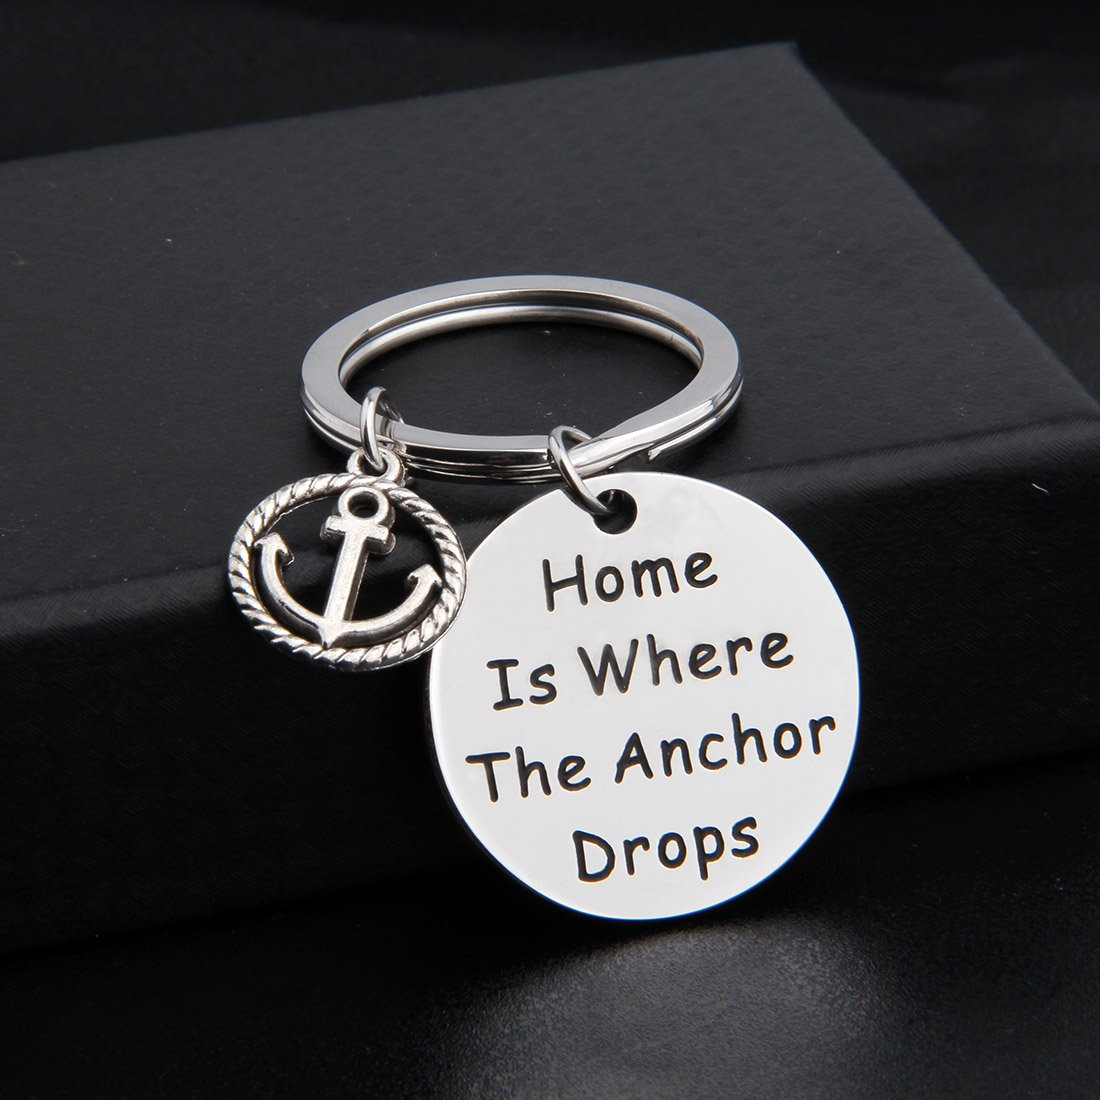 Zuo Bao Nautical Jewelry Anchor Keychain Home Is Where The Anchor Drops Ocean Jewelry Gifts (Keychain) by Zuo Bao (Image #2)